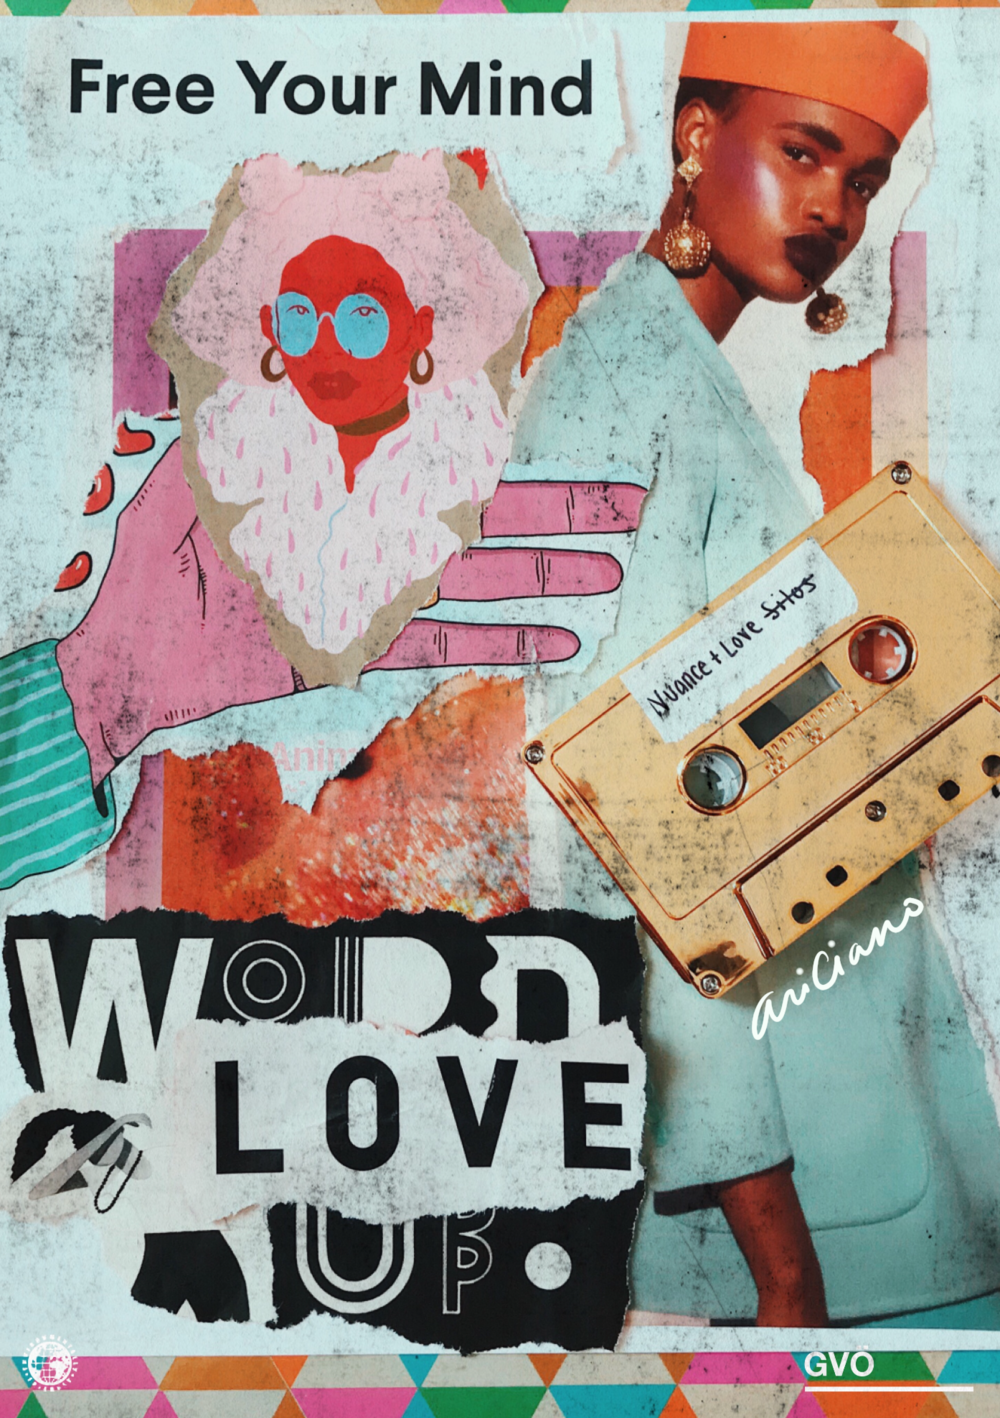 Nuance + Love | No Silos - Ariciano explores an eclectic convening of sonic styles to sculpt an experience of generational, psychological and geographical transportation. A sort of sonic axiology. A dismantle of silos via an exposition of nuance and love.Through this mixtape, Ariciano merges electrofunk, hip house, afrofunk, disco and more.